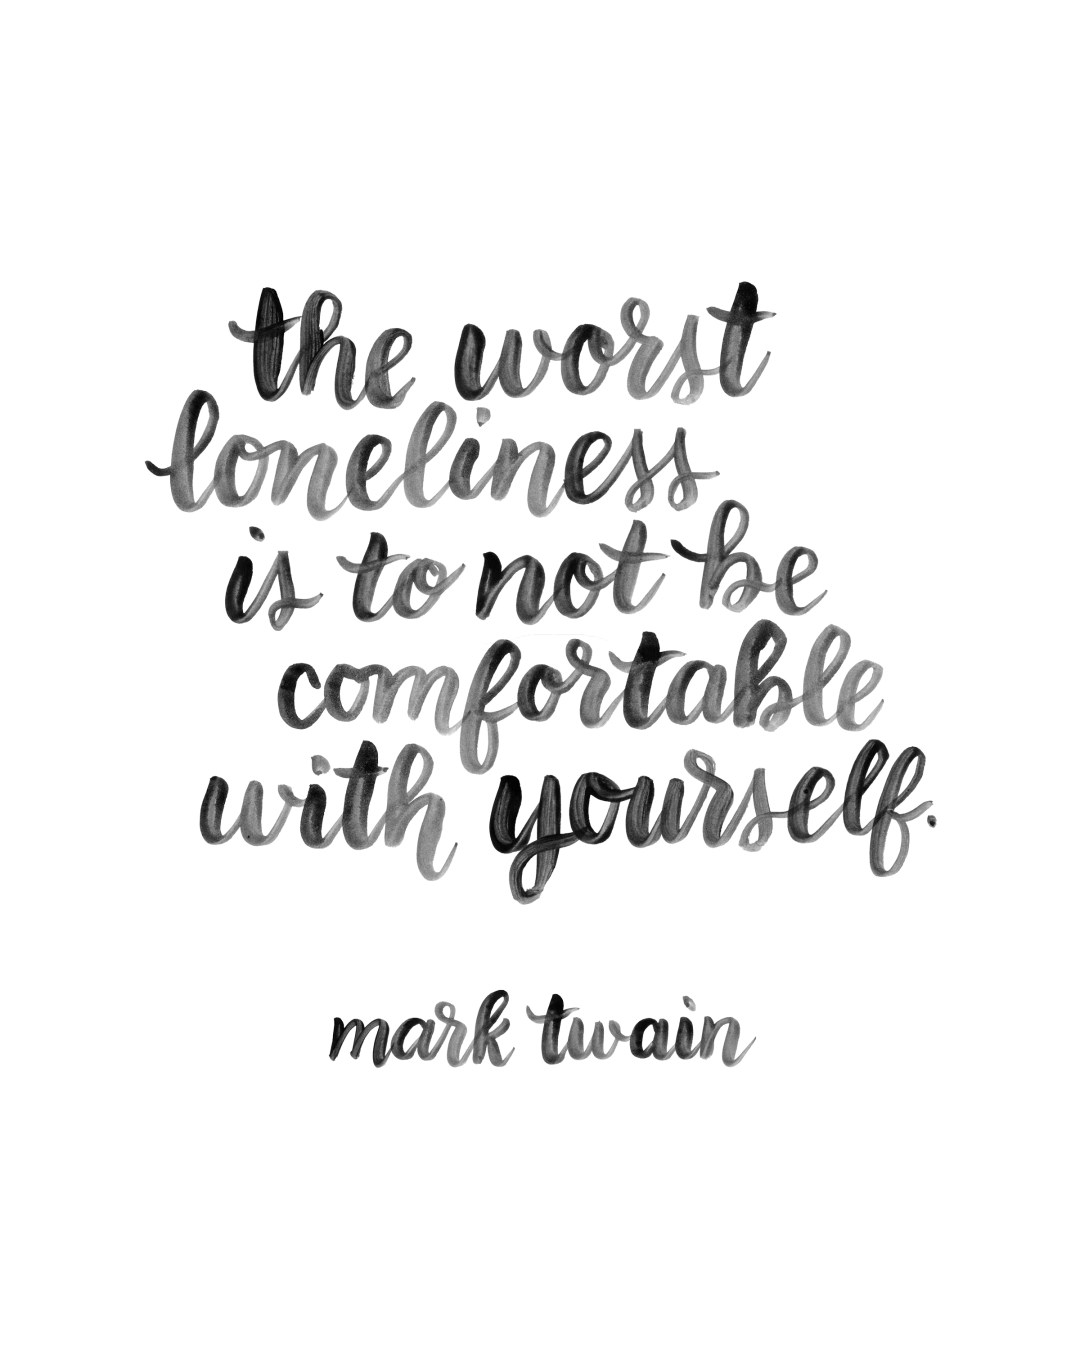 Free Lettered Mark Twain Quote - www.randomolive.com